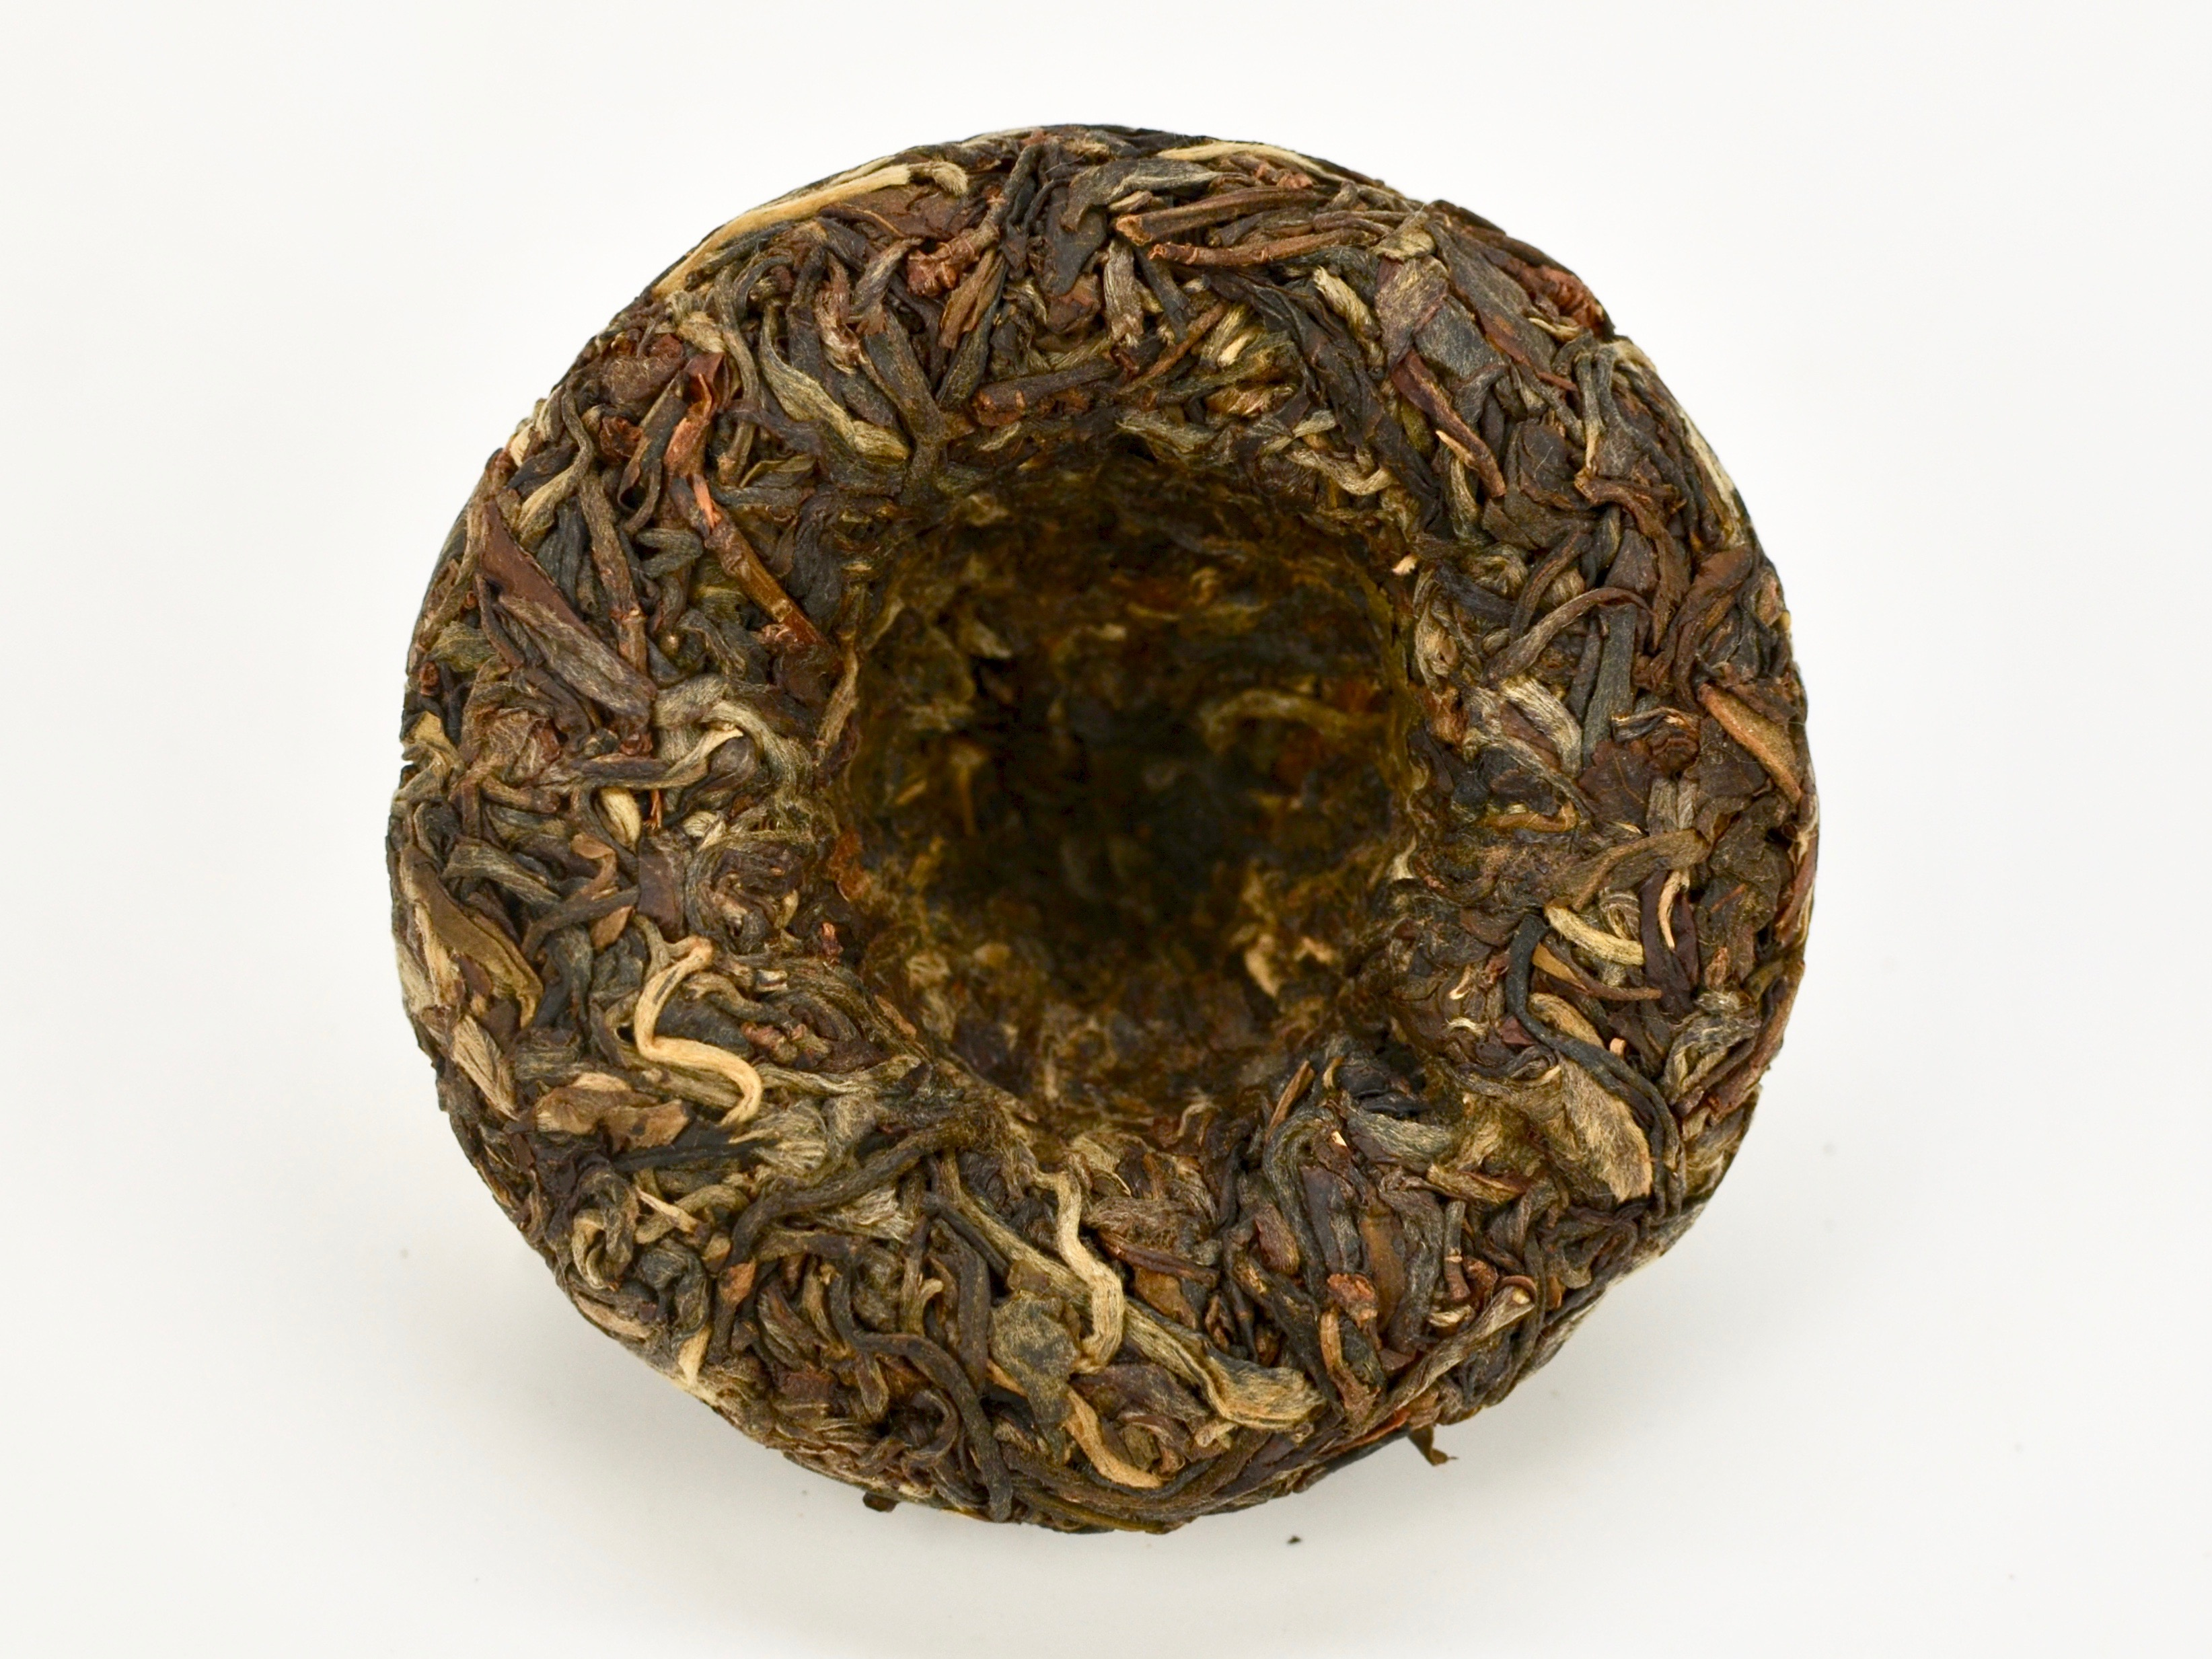 A round Little Sheng Tuocha 2014 Sheng Puer Cake unwrapped to show the compressed tea leaves in shades of dark green and the deep indentation in the center of the back of the puer cake.